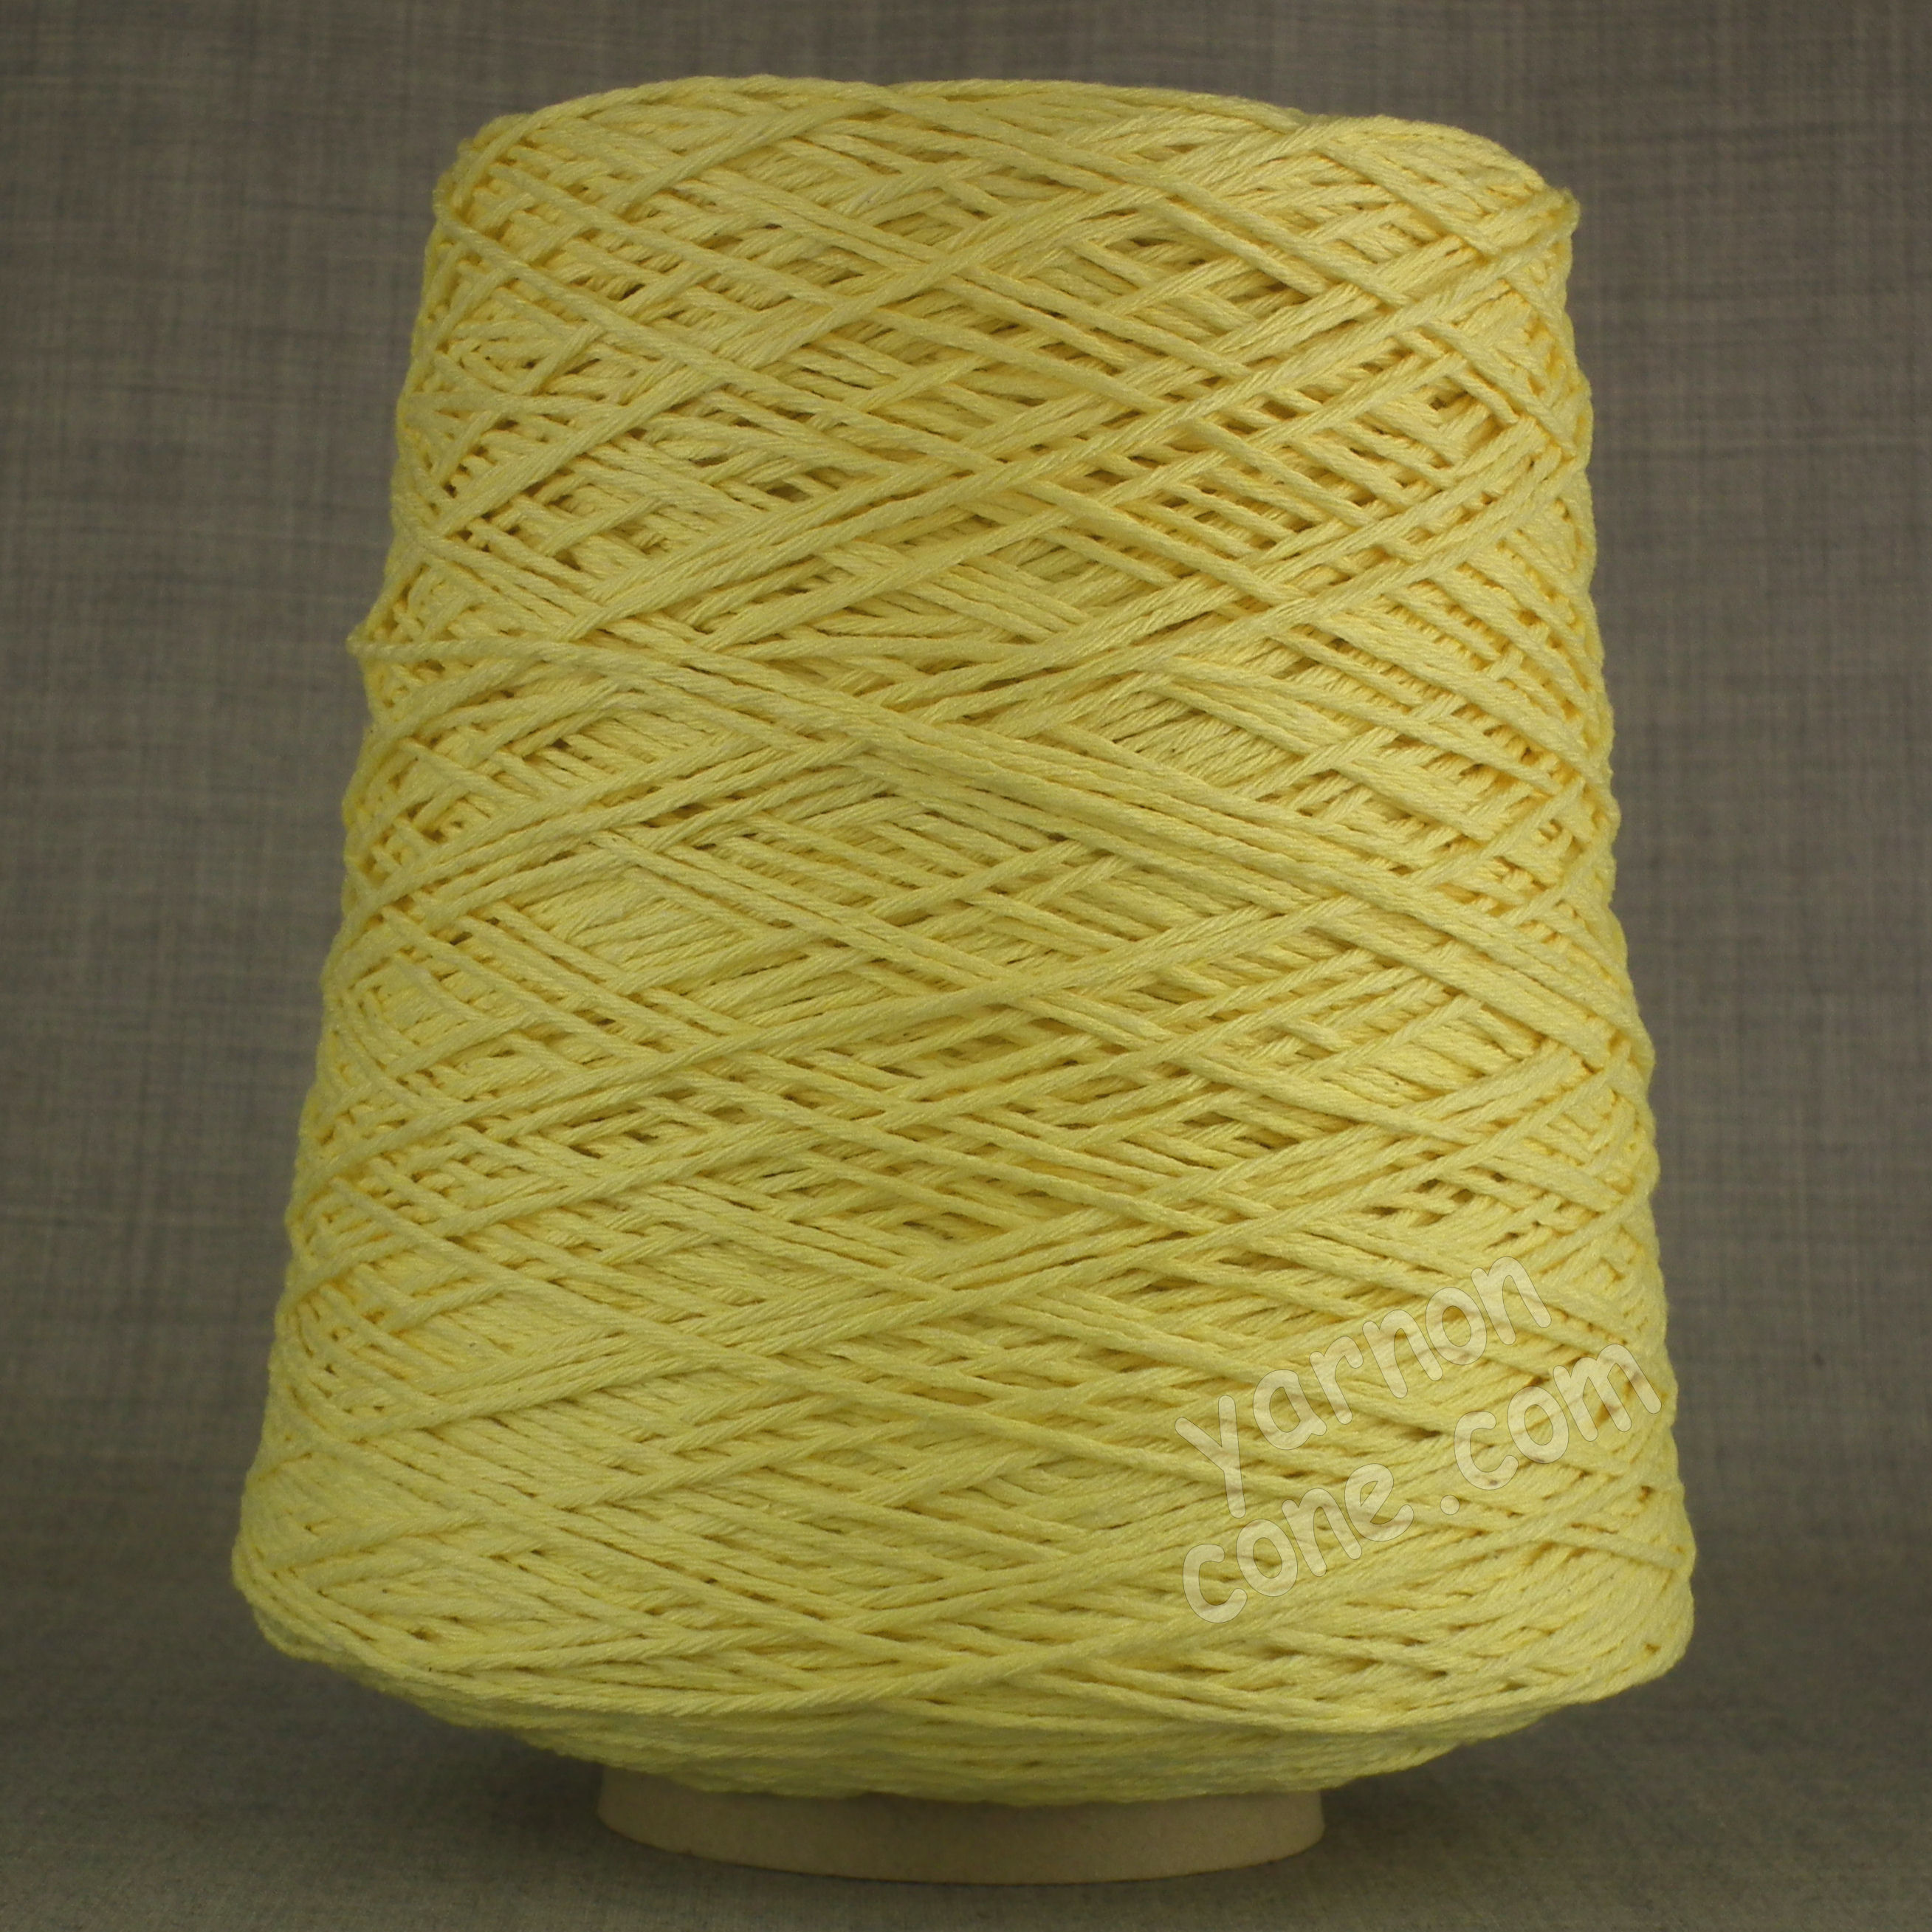 Double knitting DK soft pure cotton yarn on cone hand machine knitting weaving crochet primrose yellow pastel light